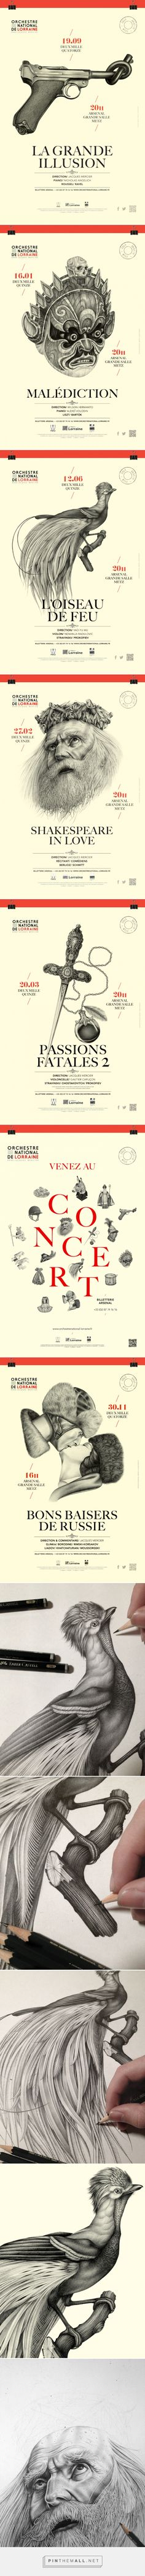 National Orchestra of Lorraine on Behance